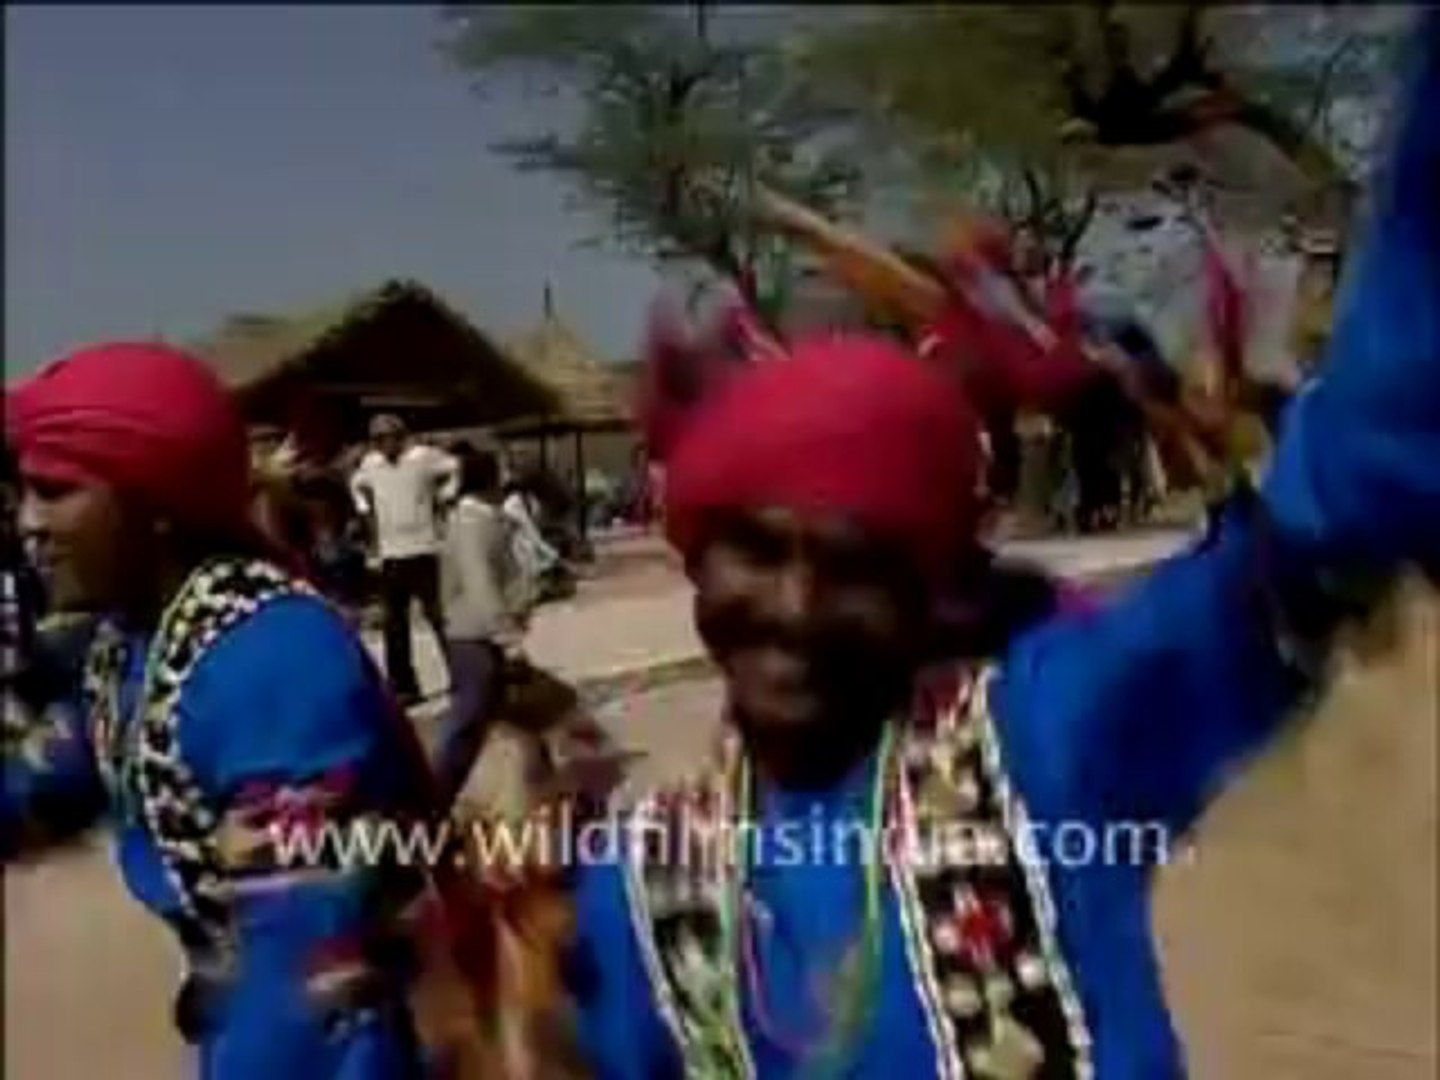 328.Traditional dances at Suraj Kund Mela